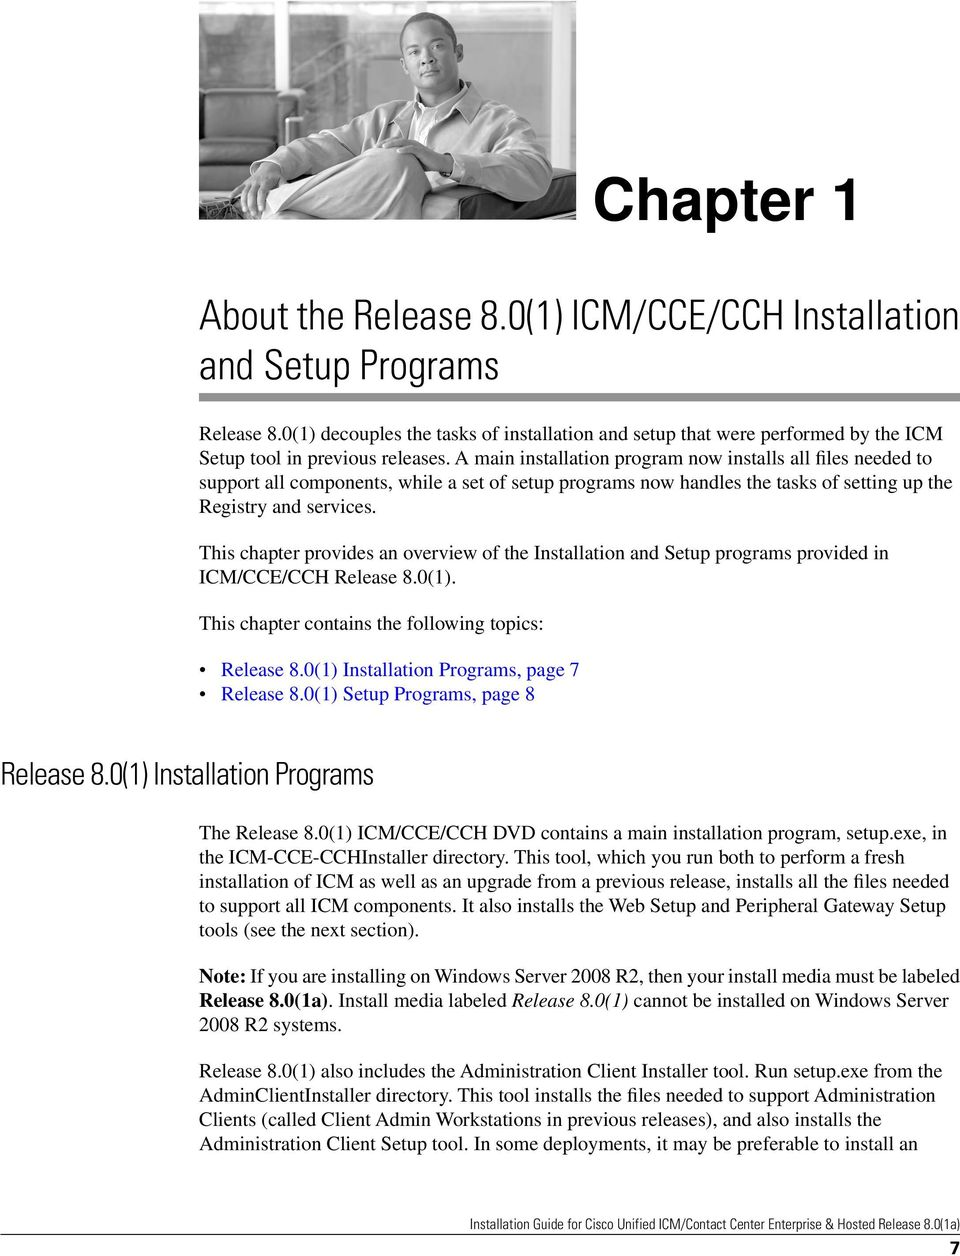 This chapter provides an overview of the Installation and Setup programs provided in ICM/CCE/CCH Release 8.0(1). This chapter contains the following topics: Release 8.